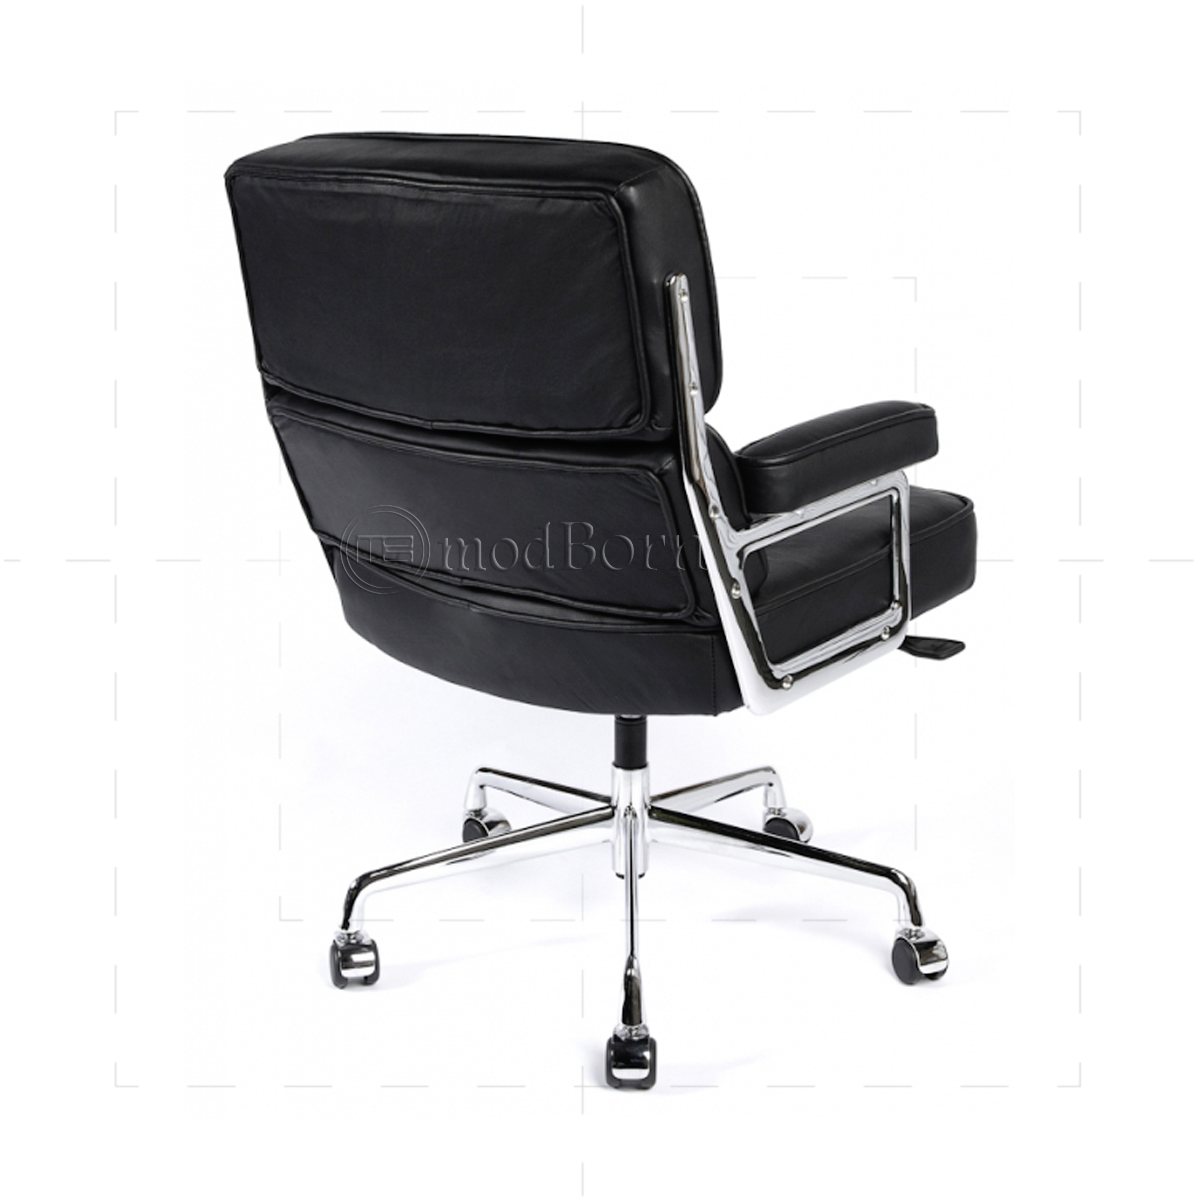 Bon EA104 Eames Style Office Lobby Black Leather Executive Chair   Replica